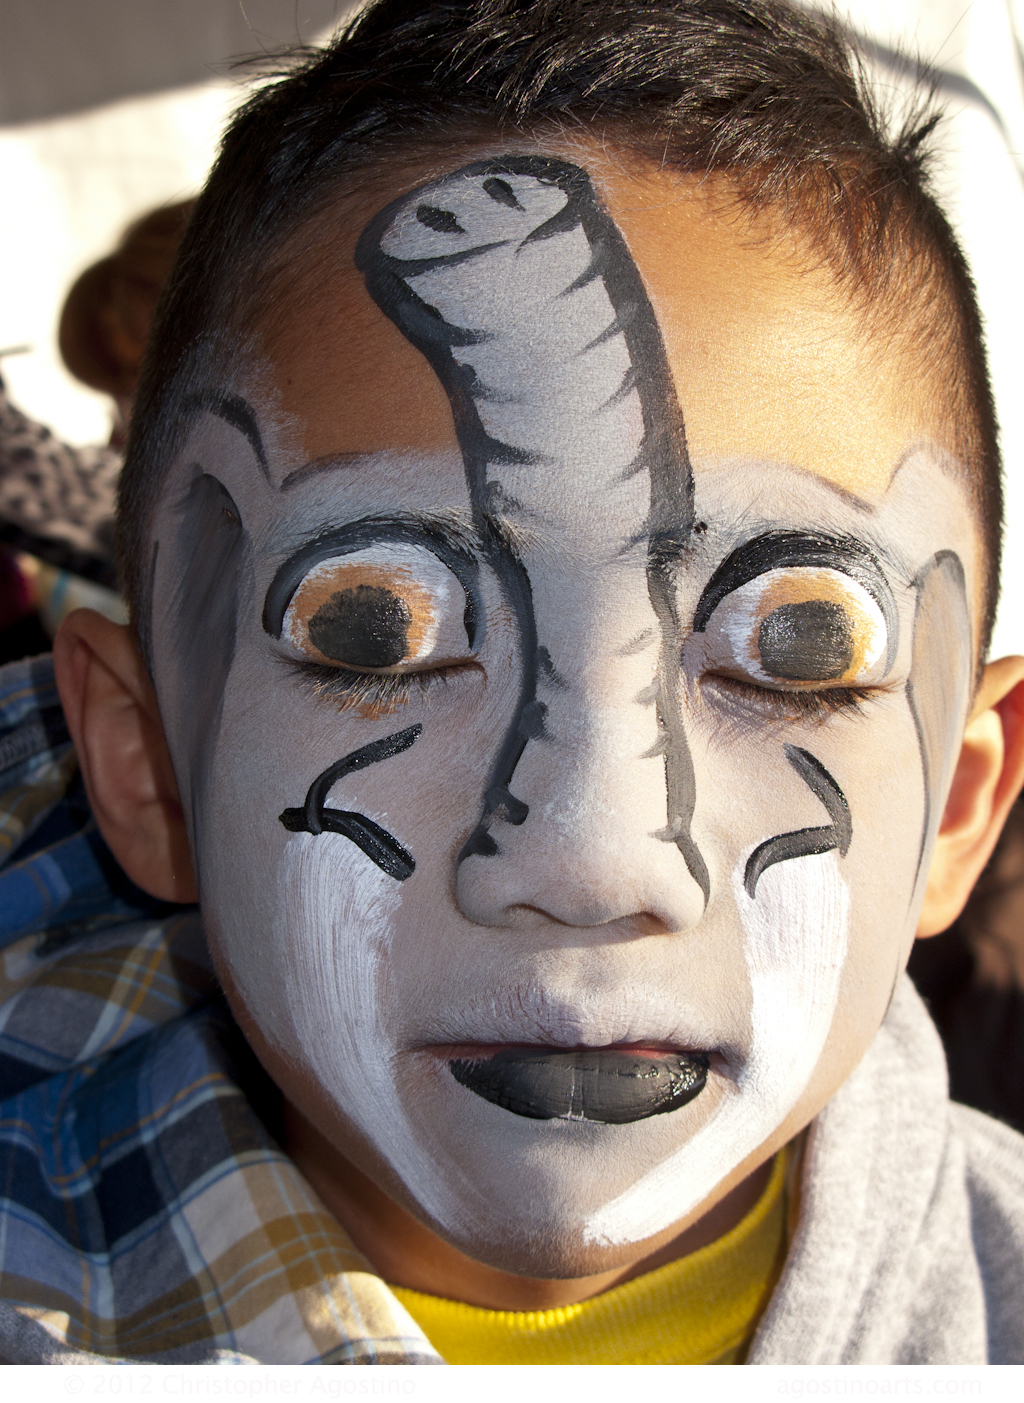 Zoo Animal Face Painting Designs - Home Decor